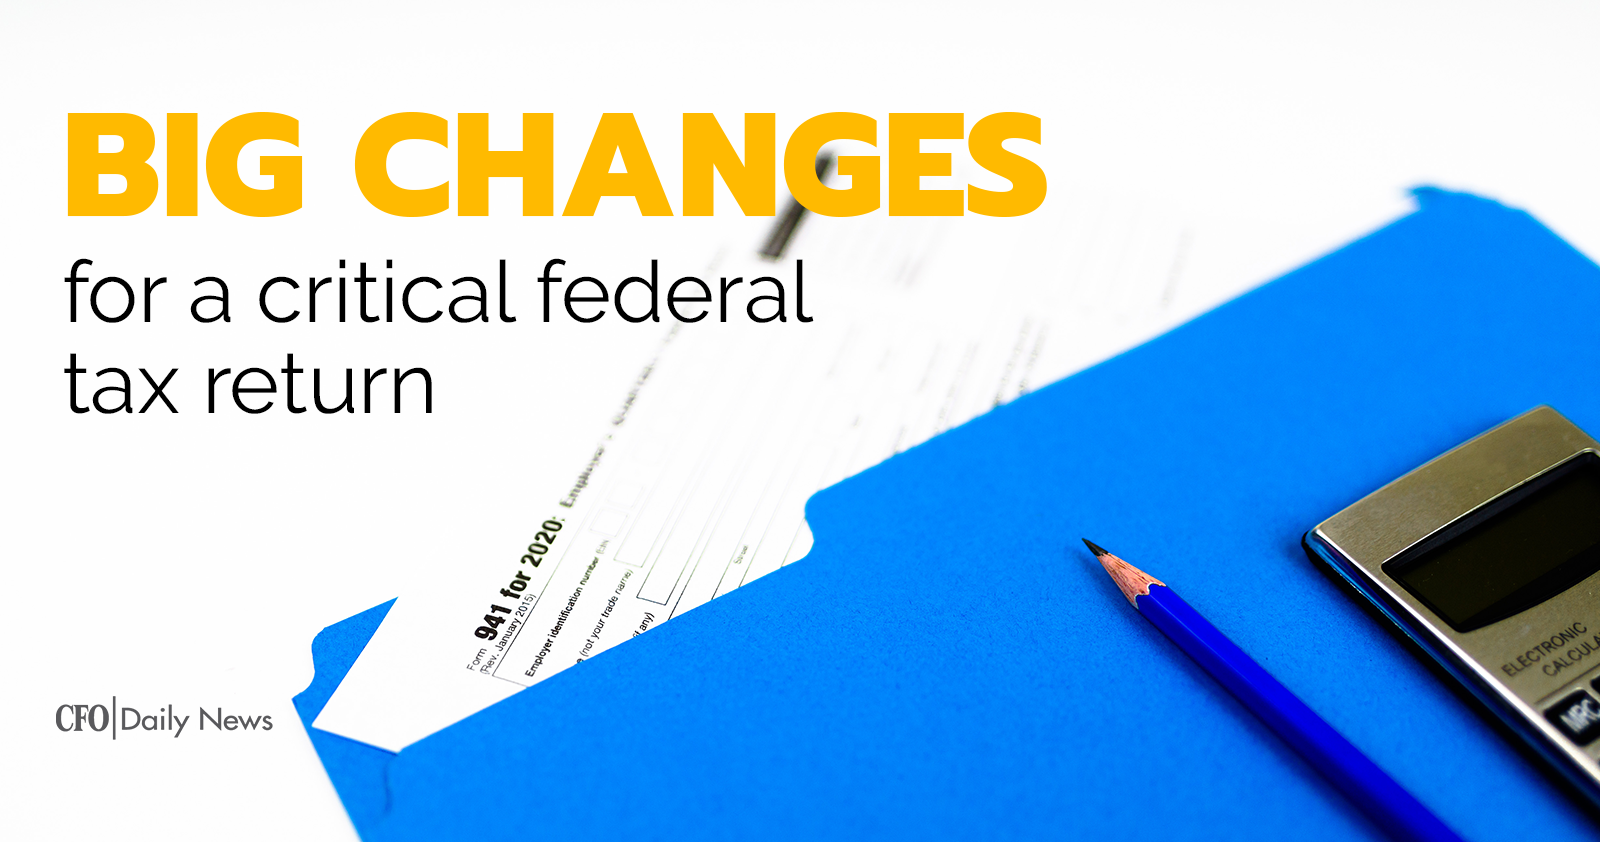 big changes for a critical federal tax return